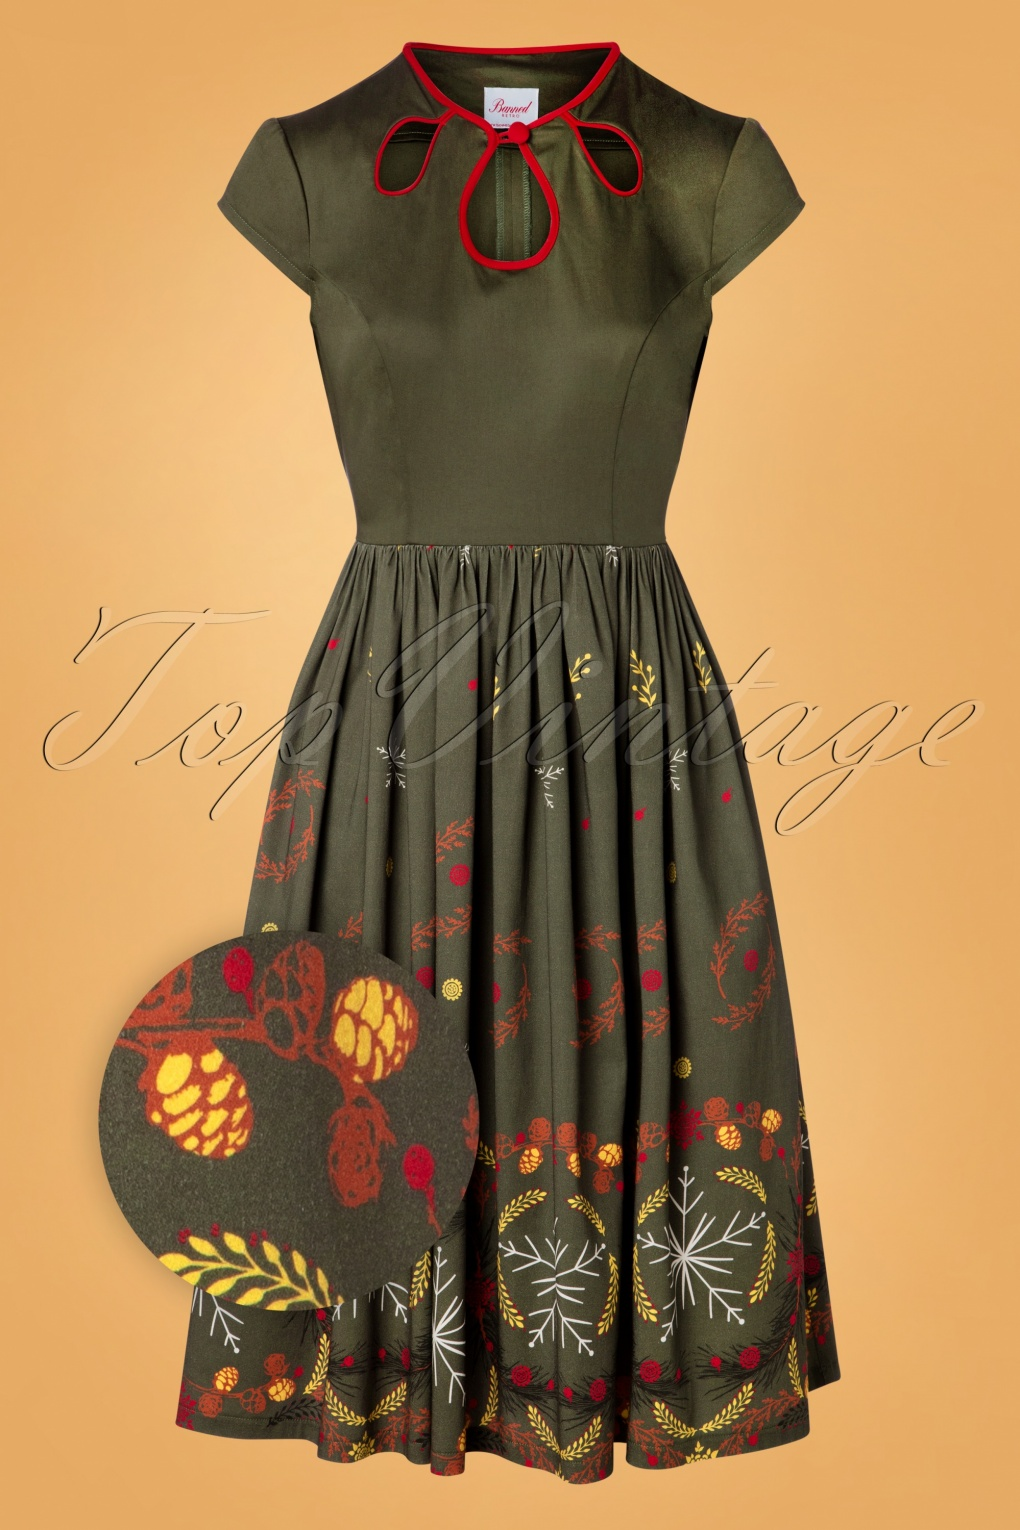 Cottagecore Dresses Aesthetic, Granny, Vintage 50s Winter Leaves Swing Dress in Green £49.21 AT vintagedancer.com